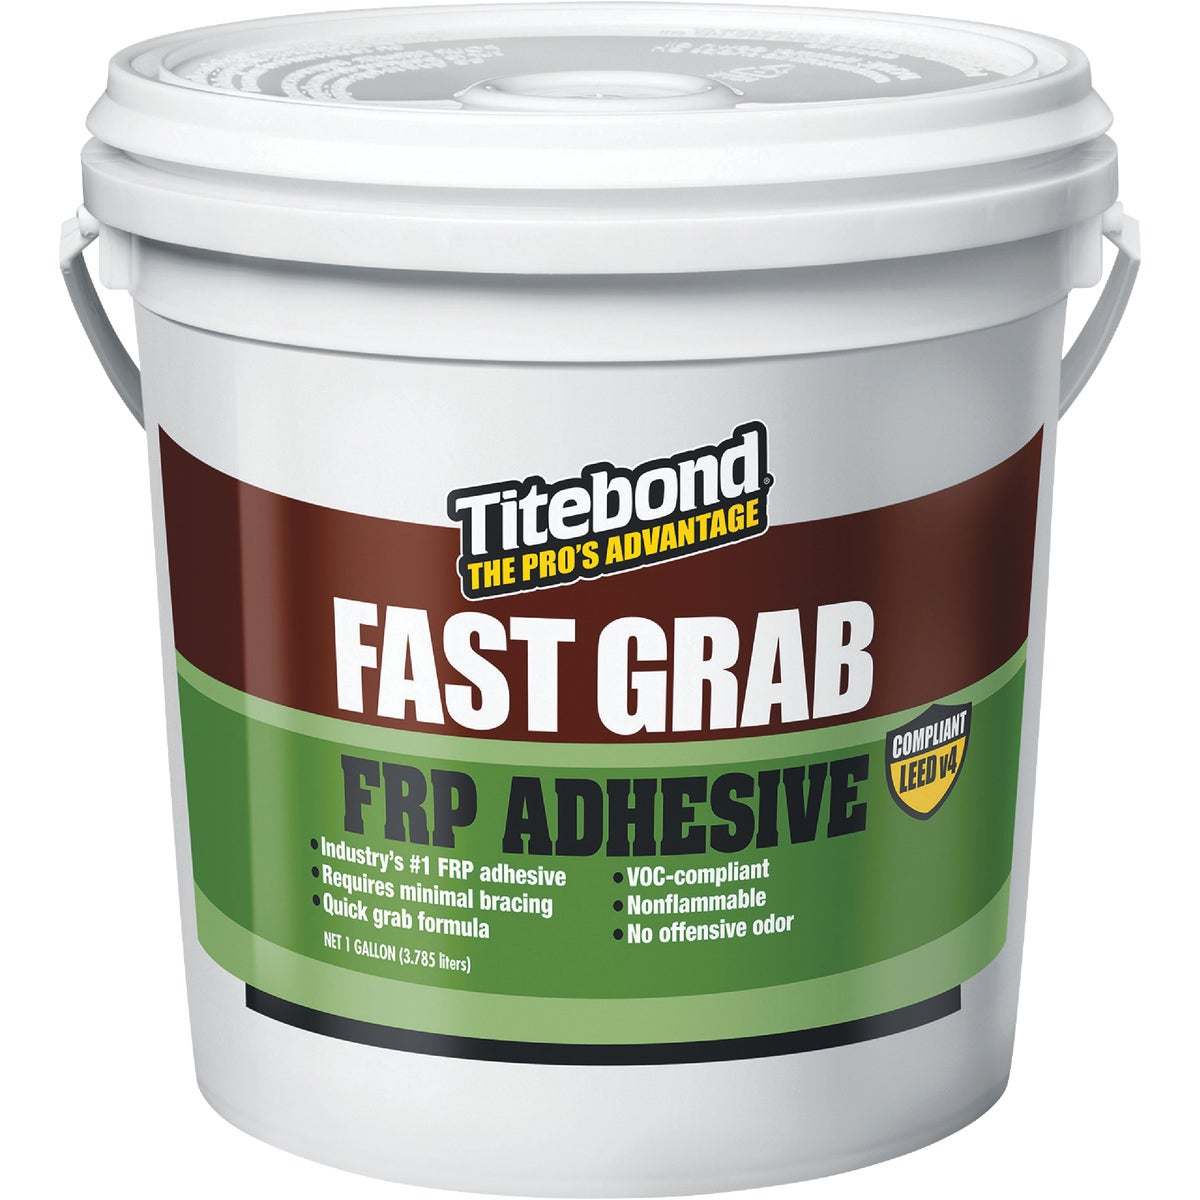 GAL FASTGRB FRP ADHESIVE - 4056 by Franklin Interl